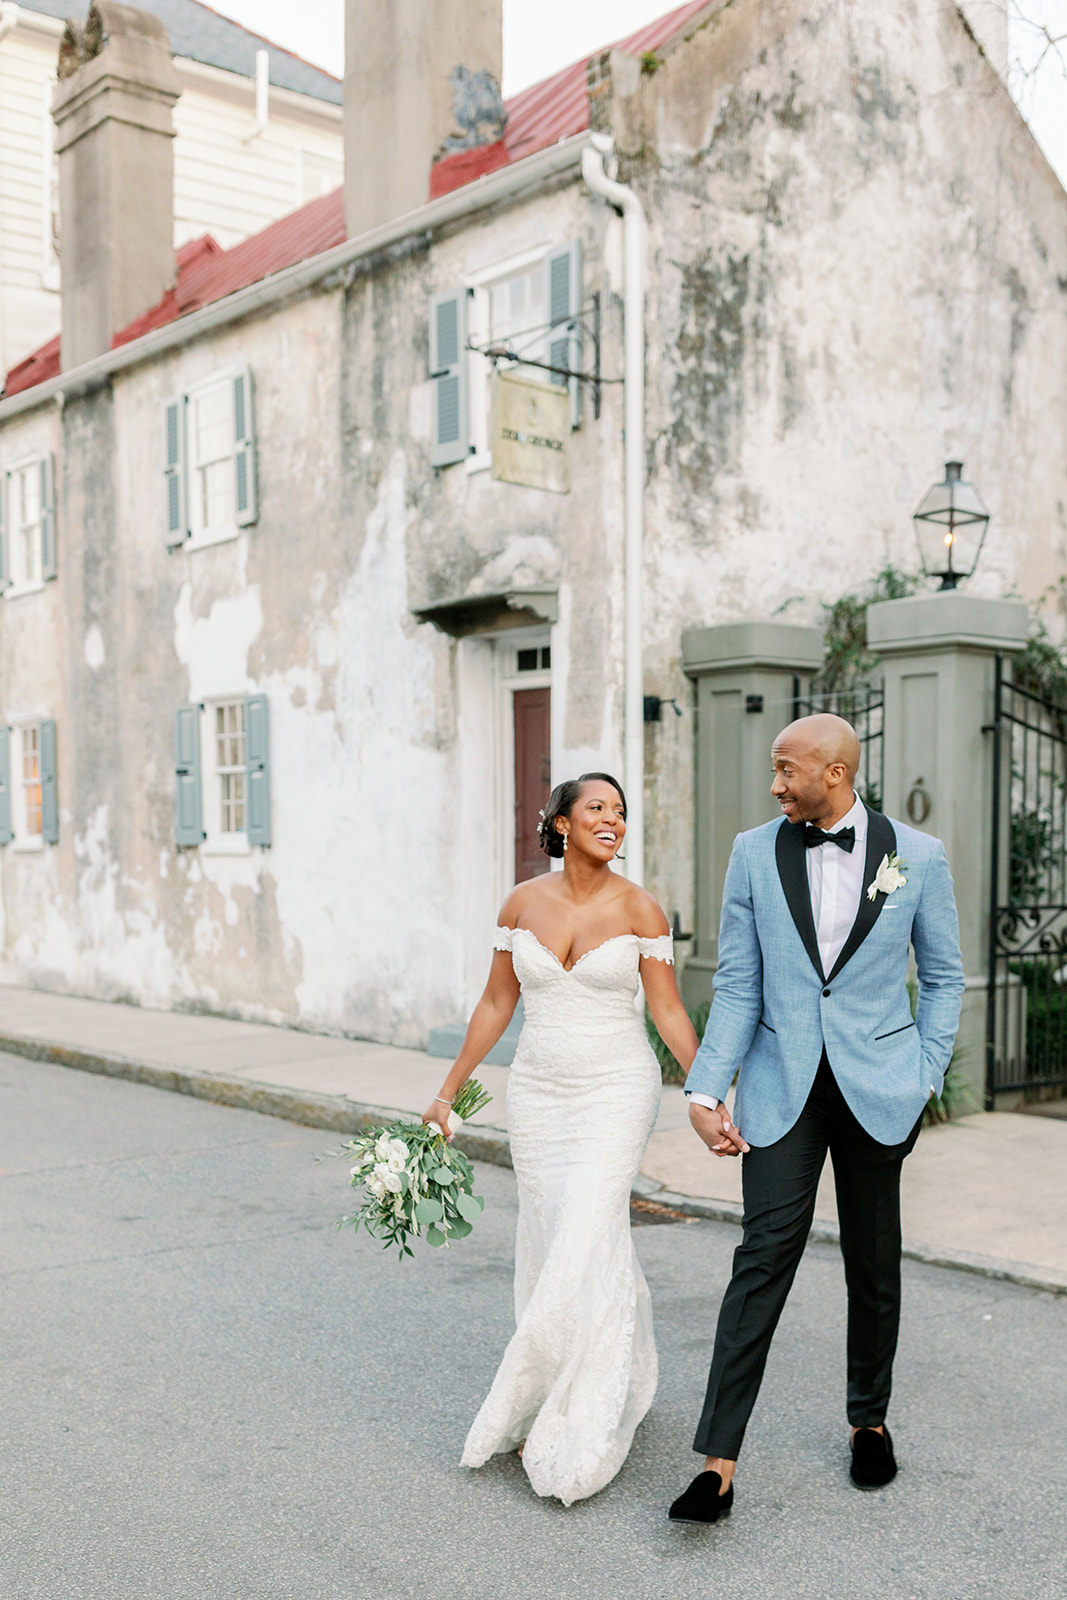 Couple walking together in road in front of rustic building